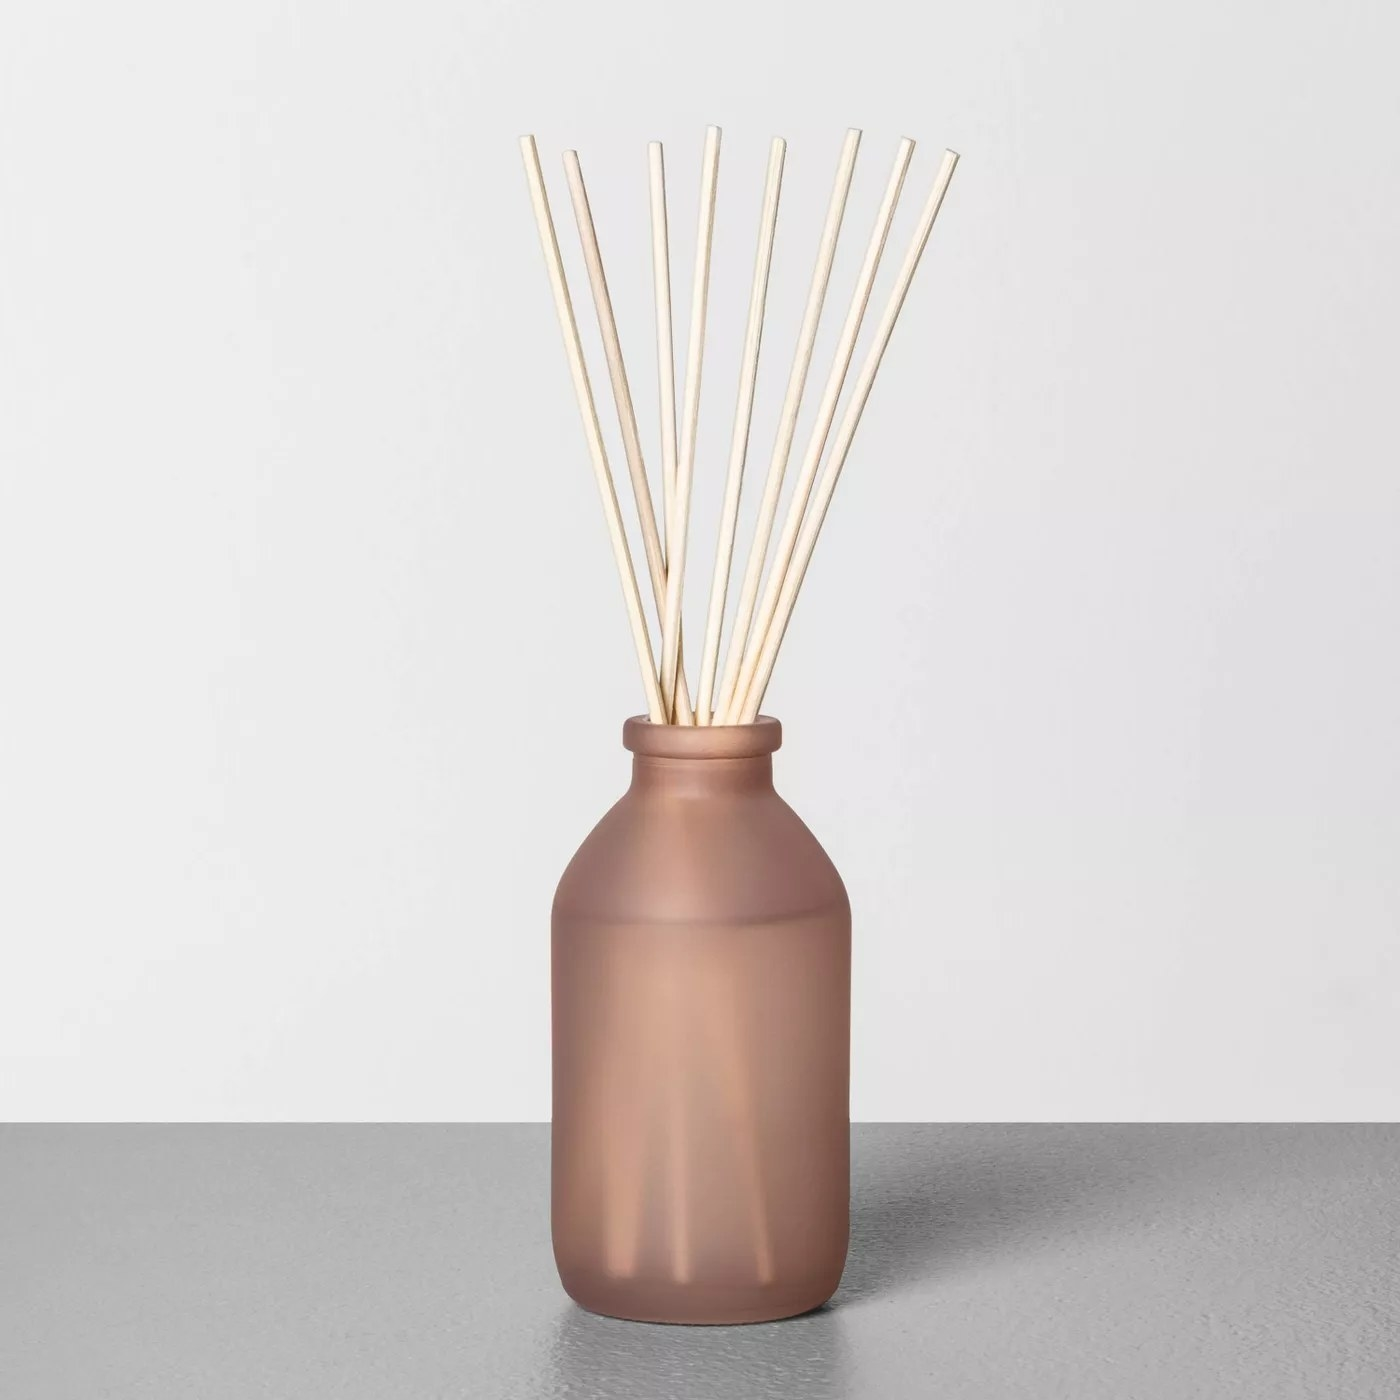 The oil reed diffuser